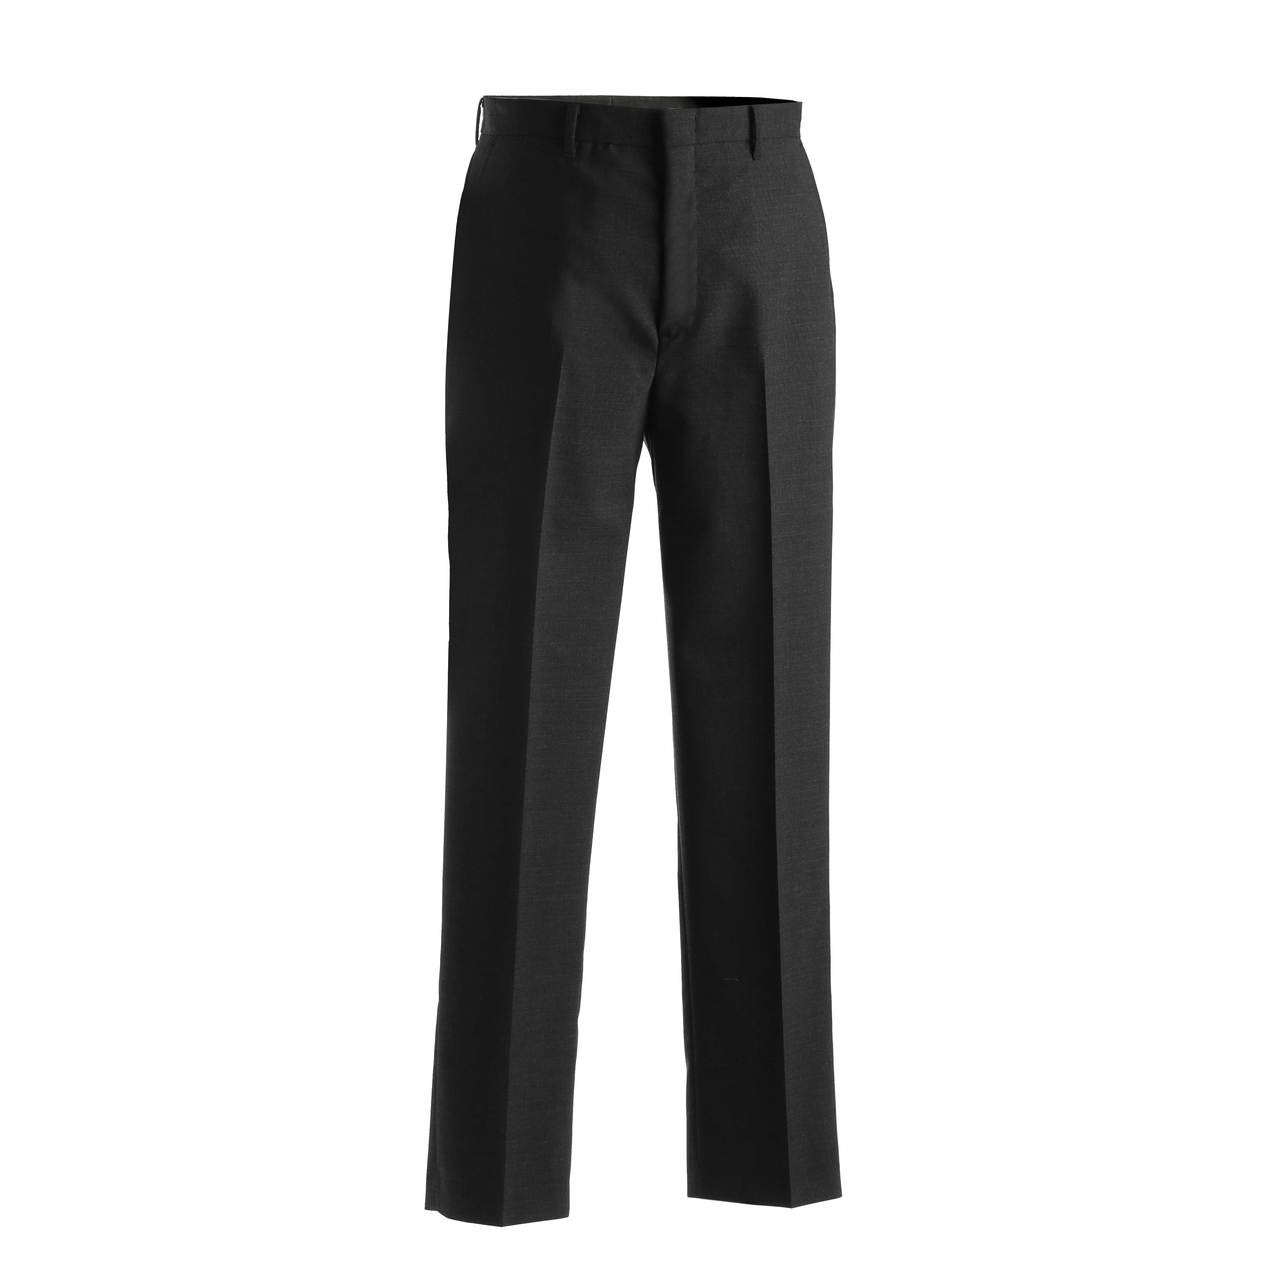 Men's Flat Front Suit Pants